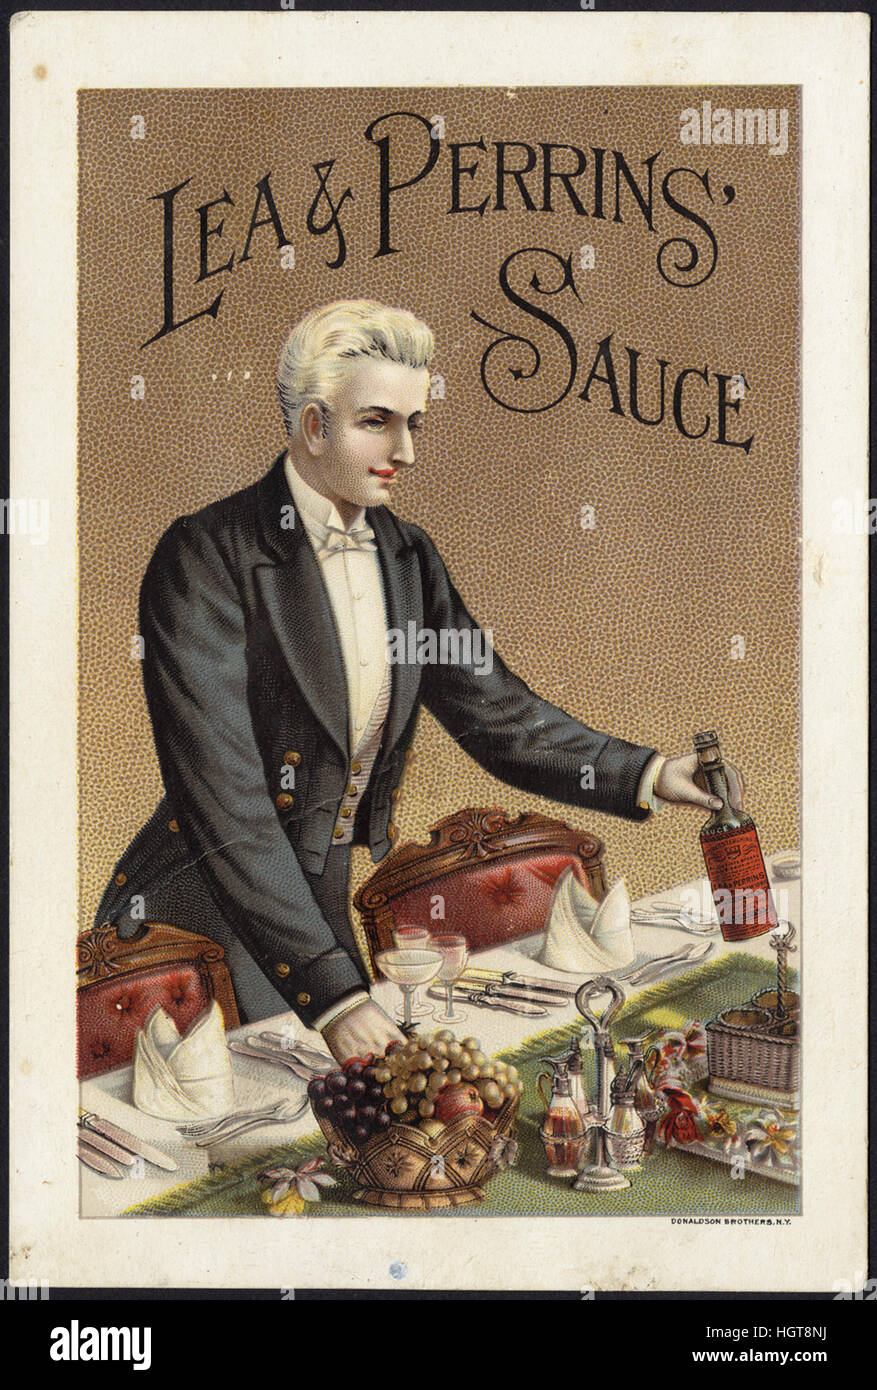 Lea & Perrins' Sauce [front]  - Food Trade Card - Stock Image